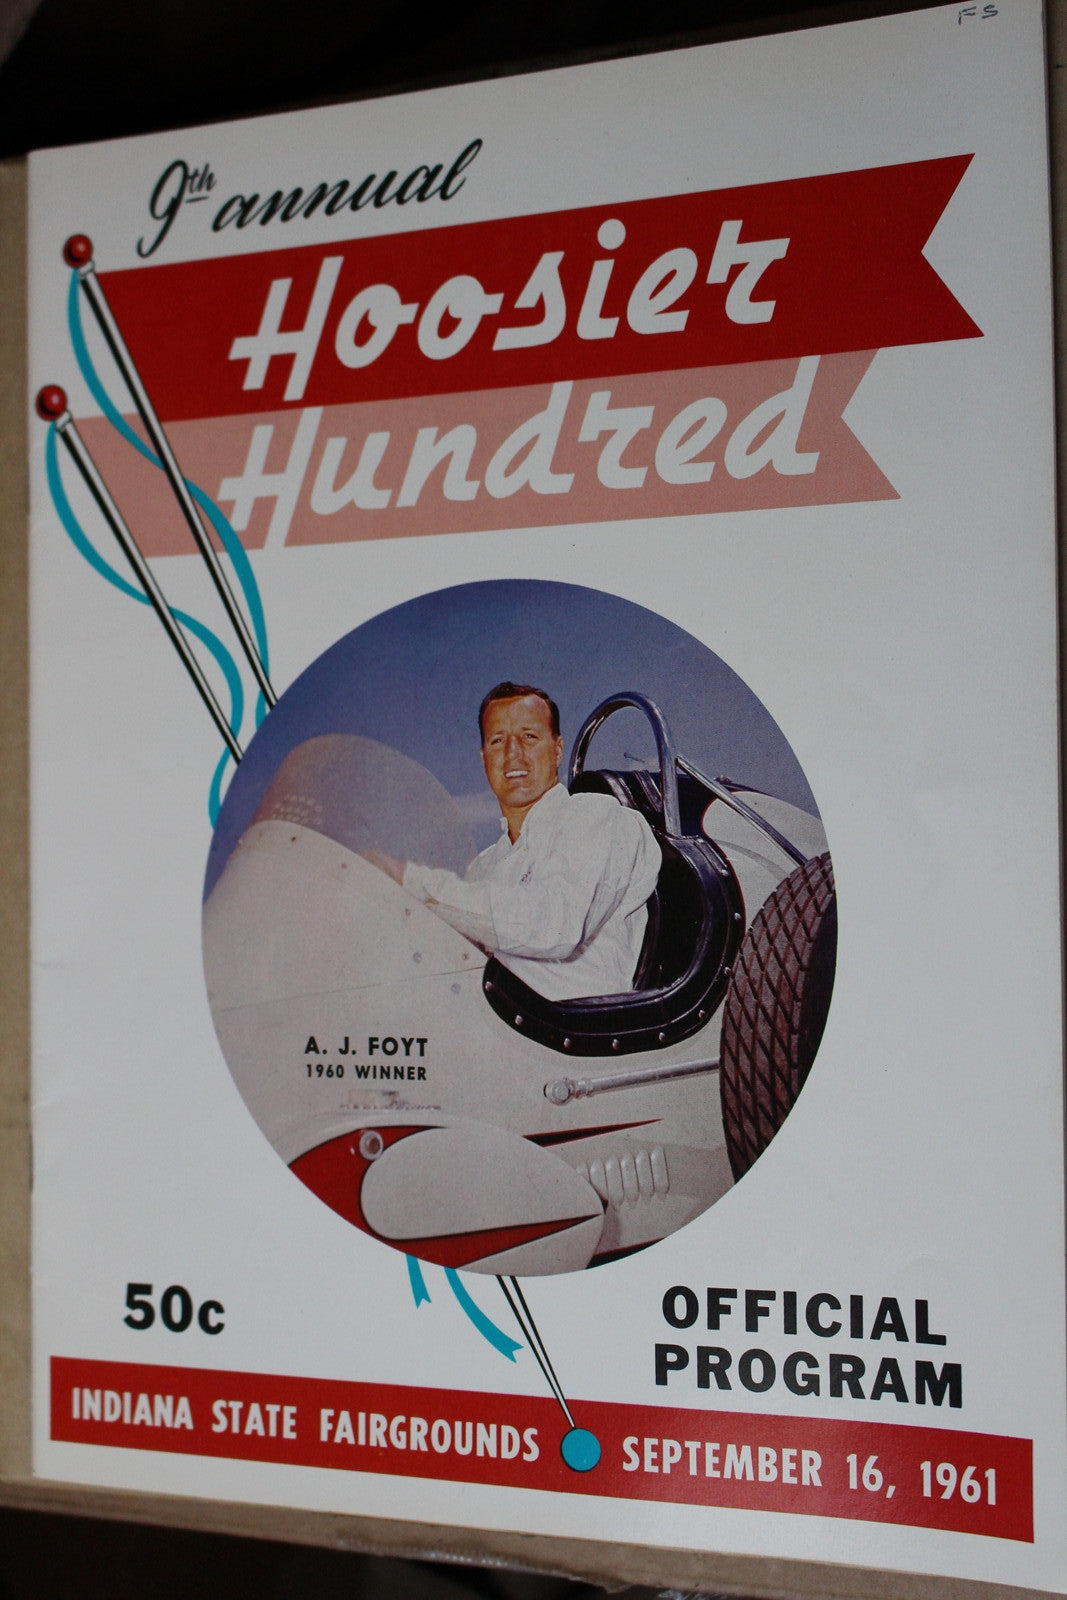 1961 Hoosier Hundred Race Program - Vintage Indy Sports